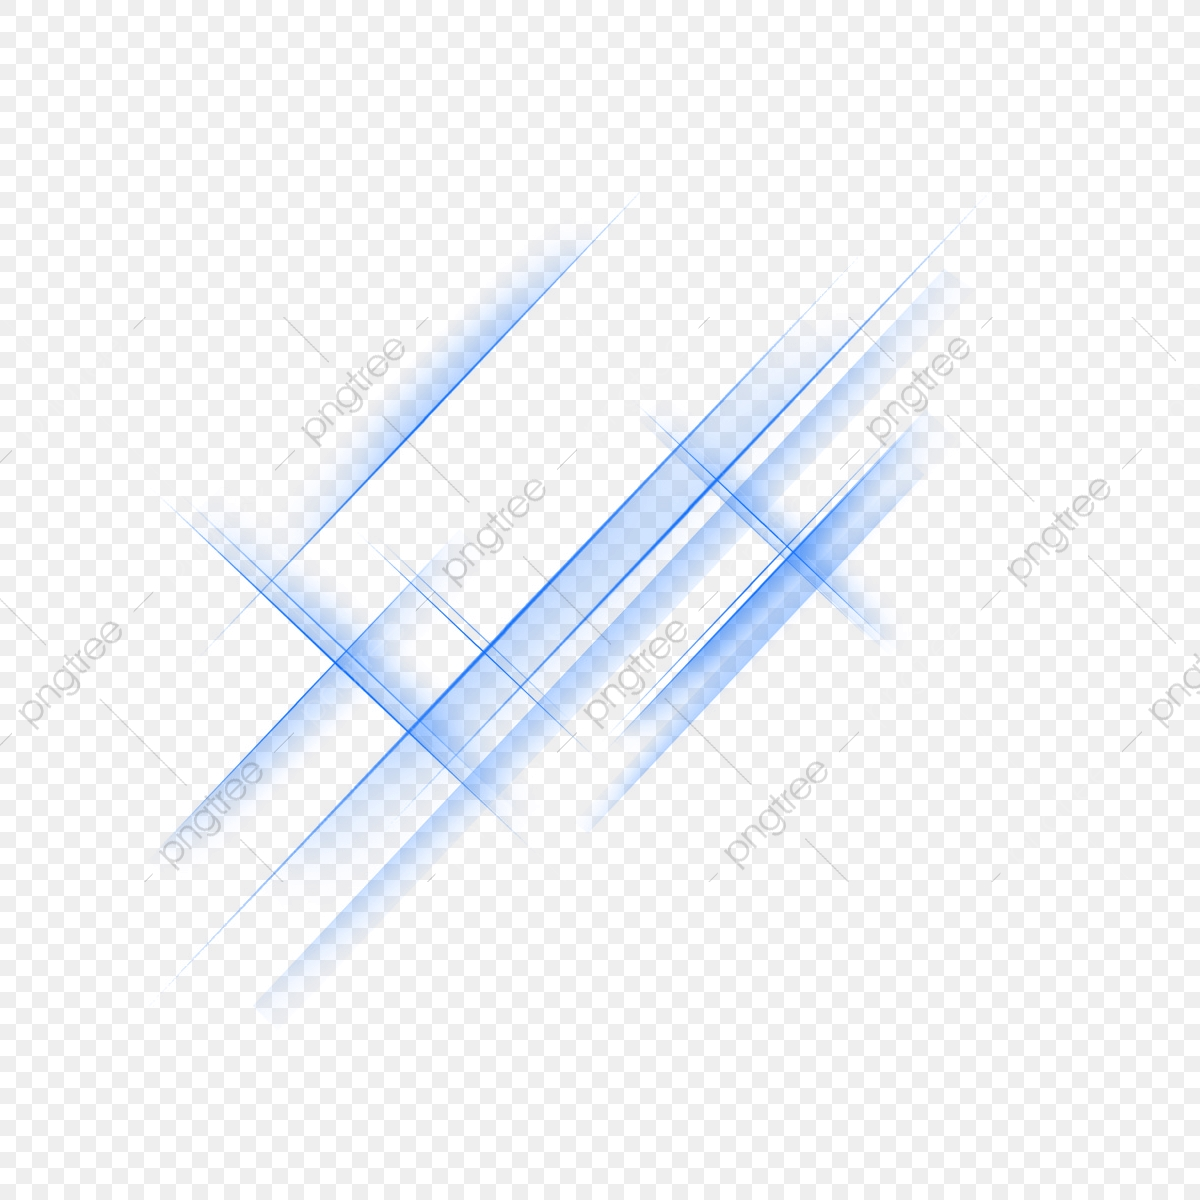 Free Abstract Lines Patterns Png, Abstract Lines Png, Free Vector.